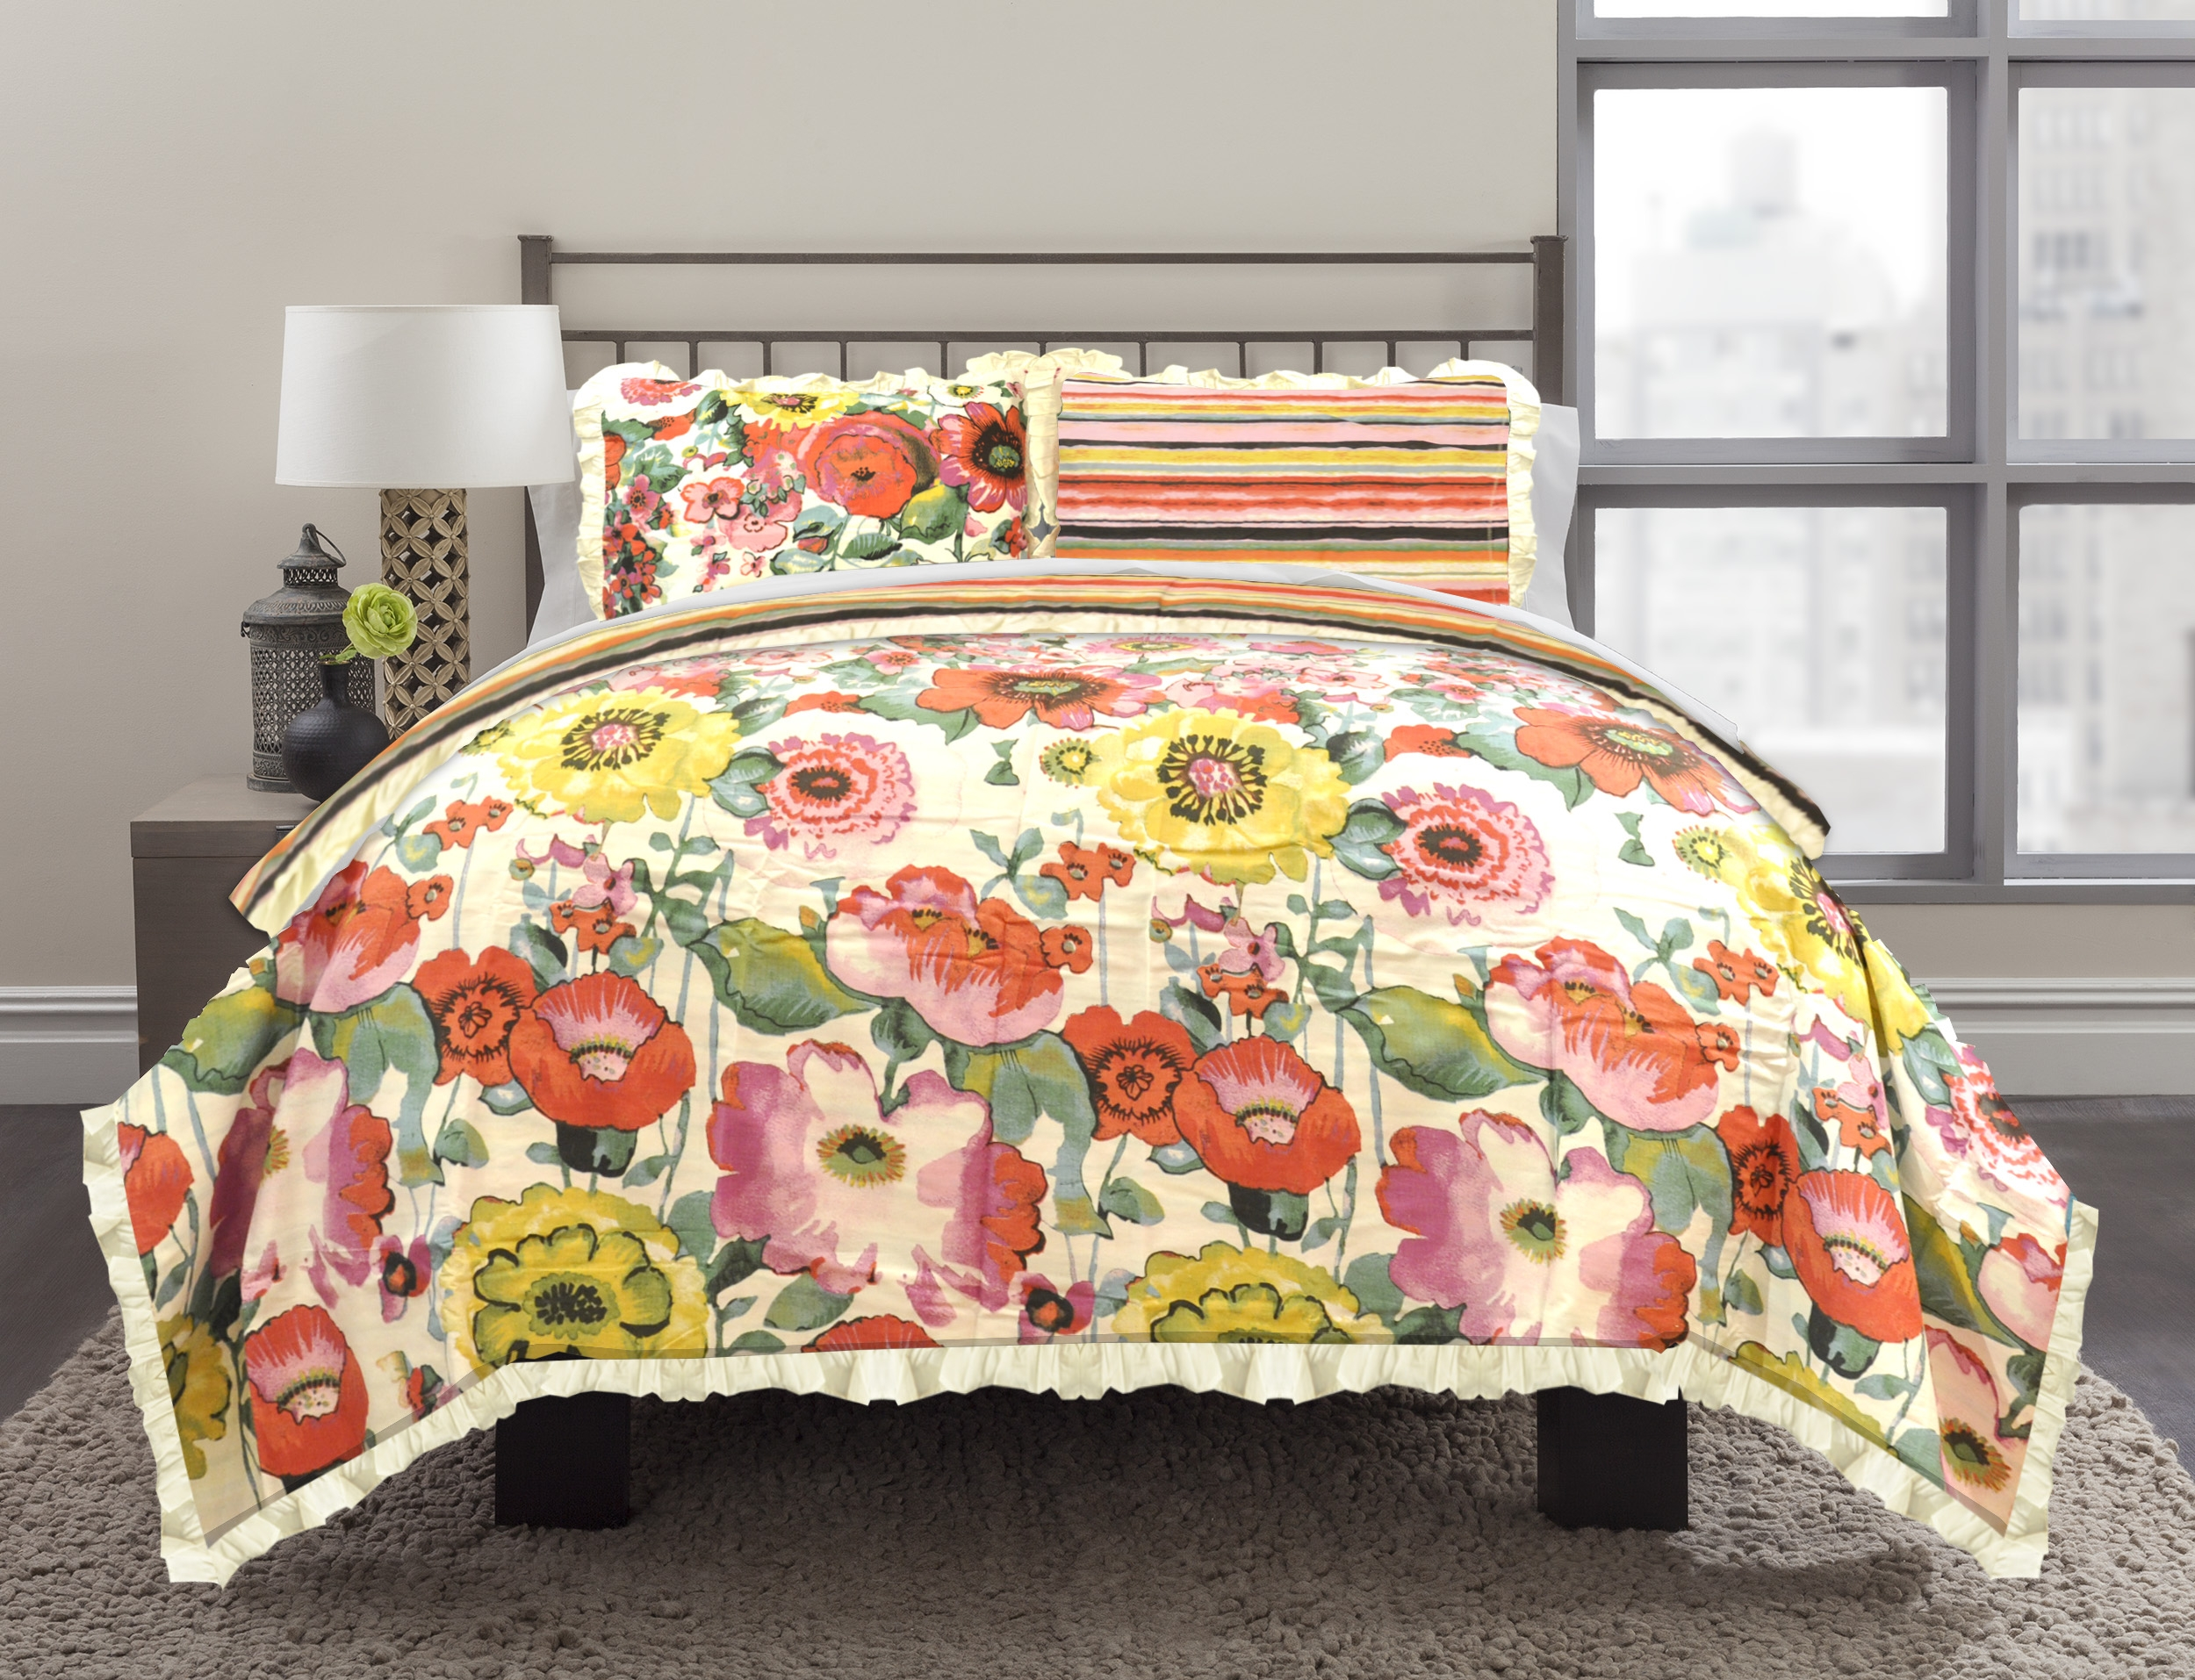 Image of Republic 3-Piece Floral Watercolor Duvet Set